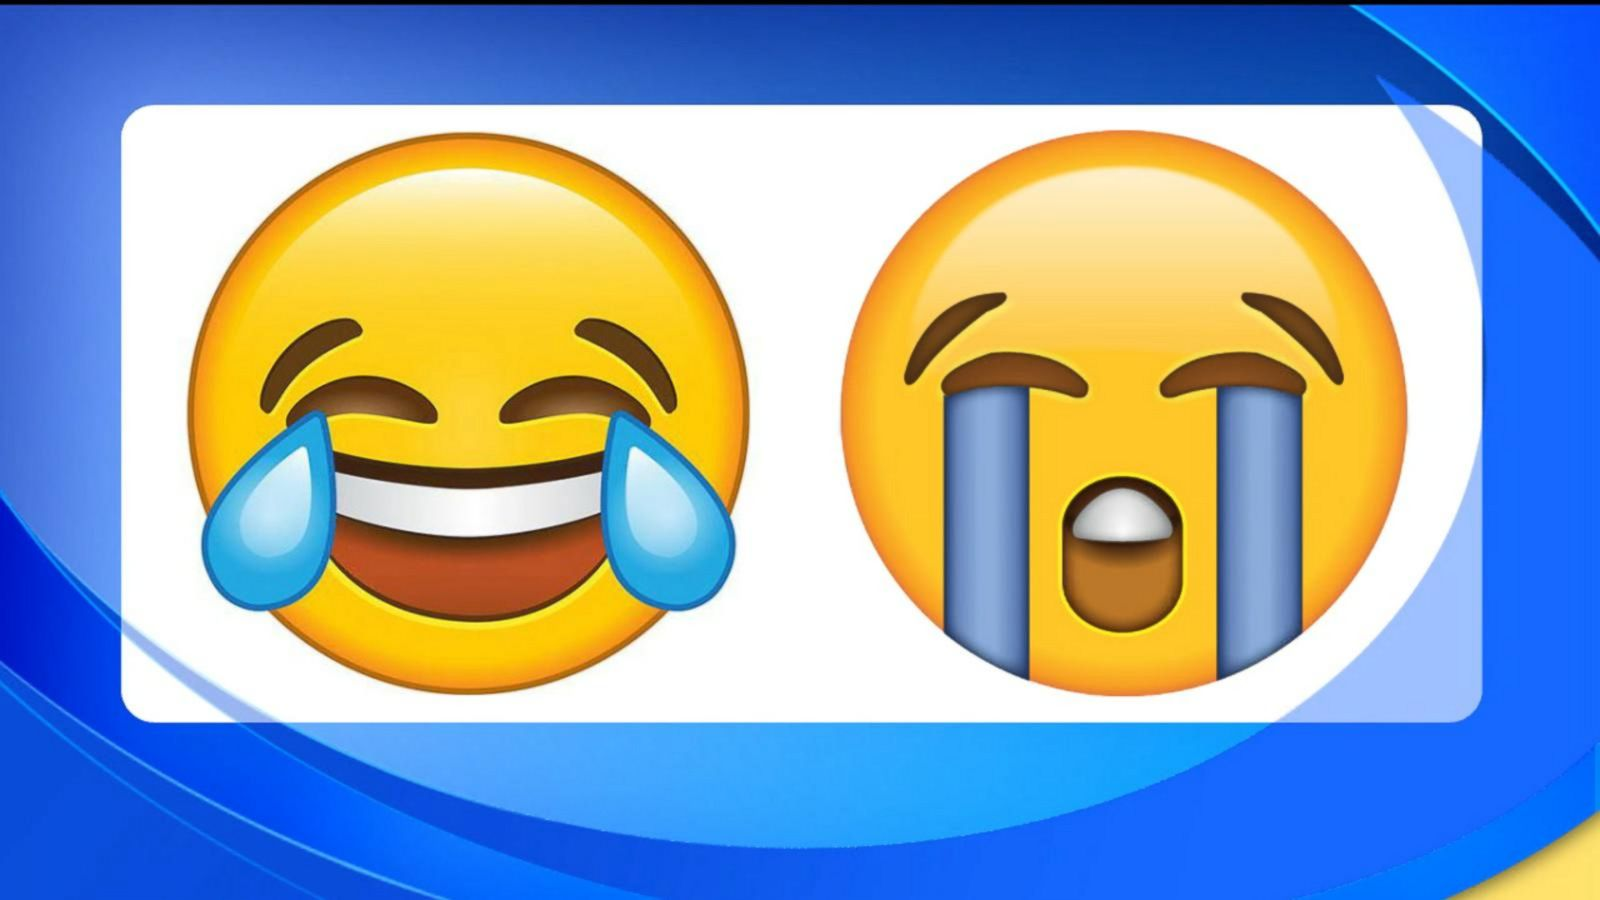 Adults are innocently, but hilariously, confusing the laughing and crying  emojis